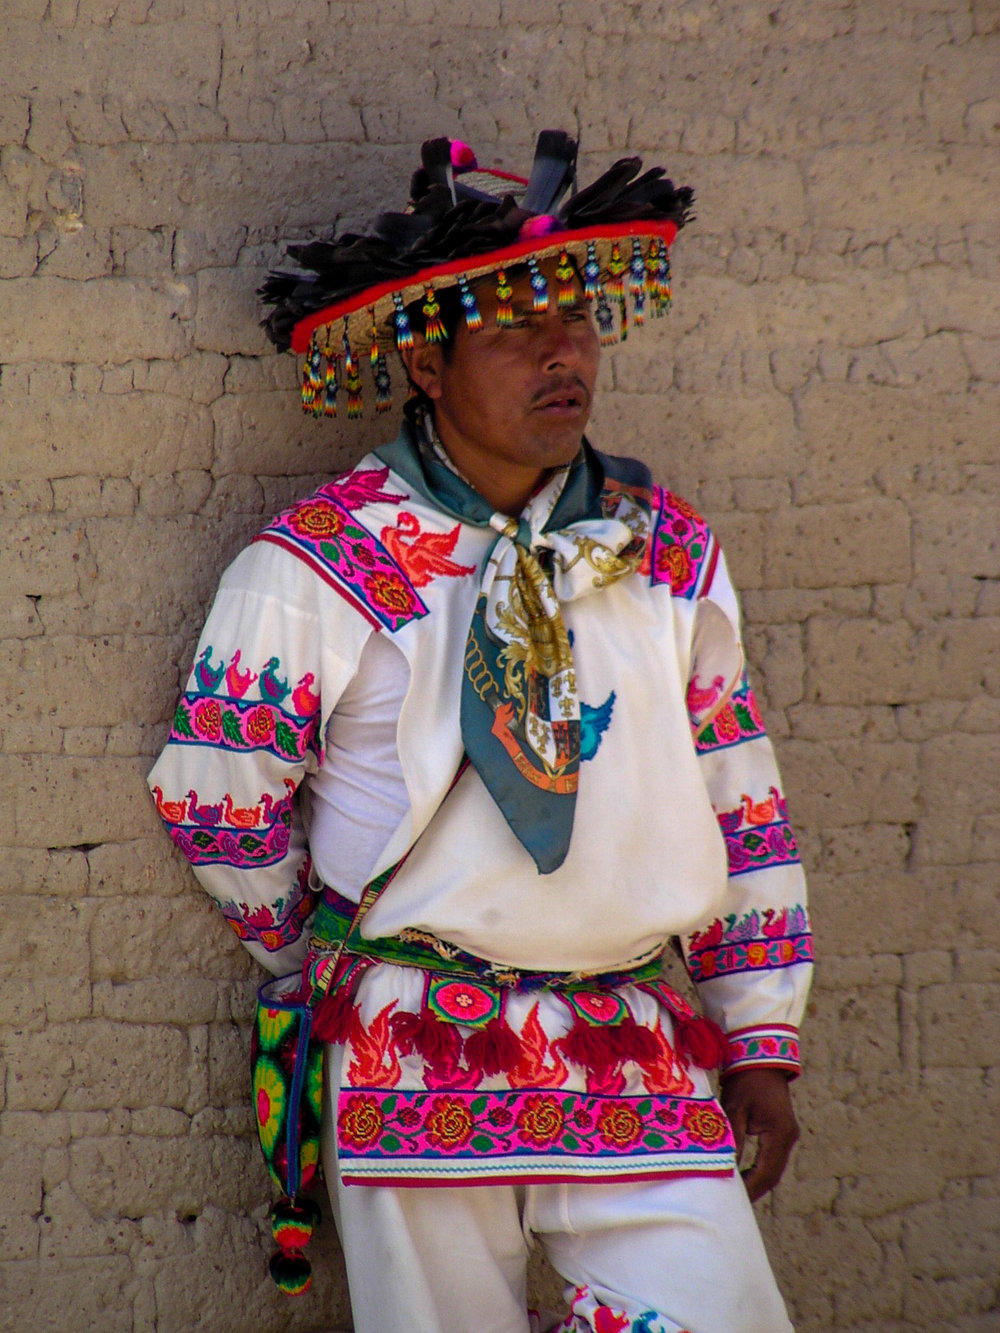 Traditional Wixarika man attire